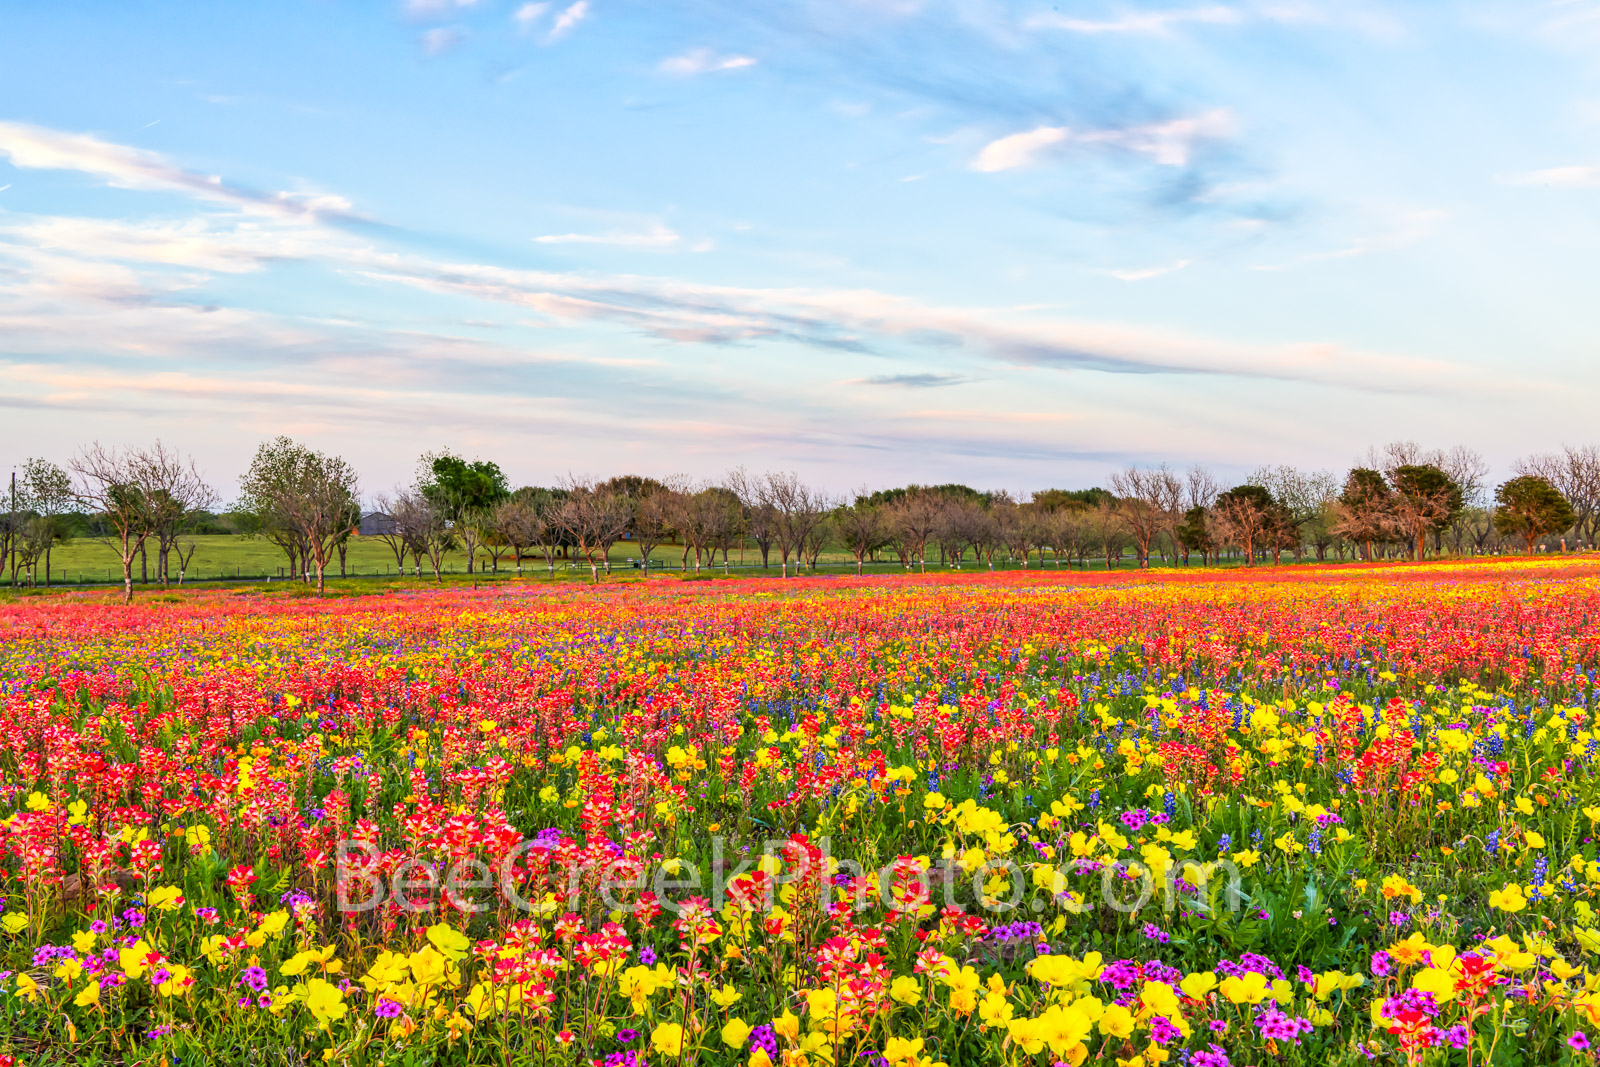 wildflowers, texas wildflowers, bluebonnets, indian paintbrush, yellow daisys, phlox, texas, central texas, south texas, floral, flowers, plants, colorful, wildflowers, backroads, pano, panorama, vibr, photo